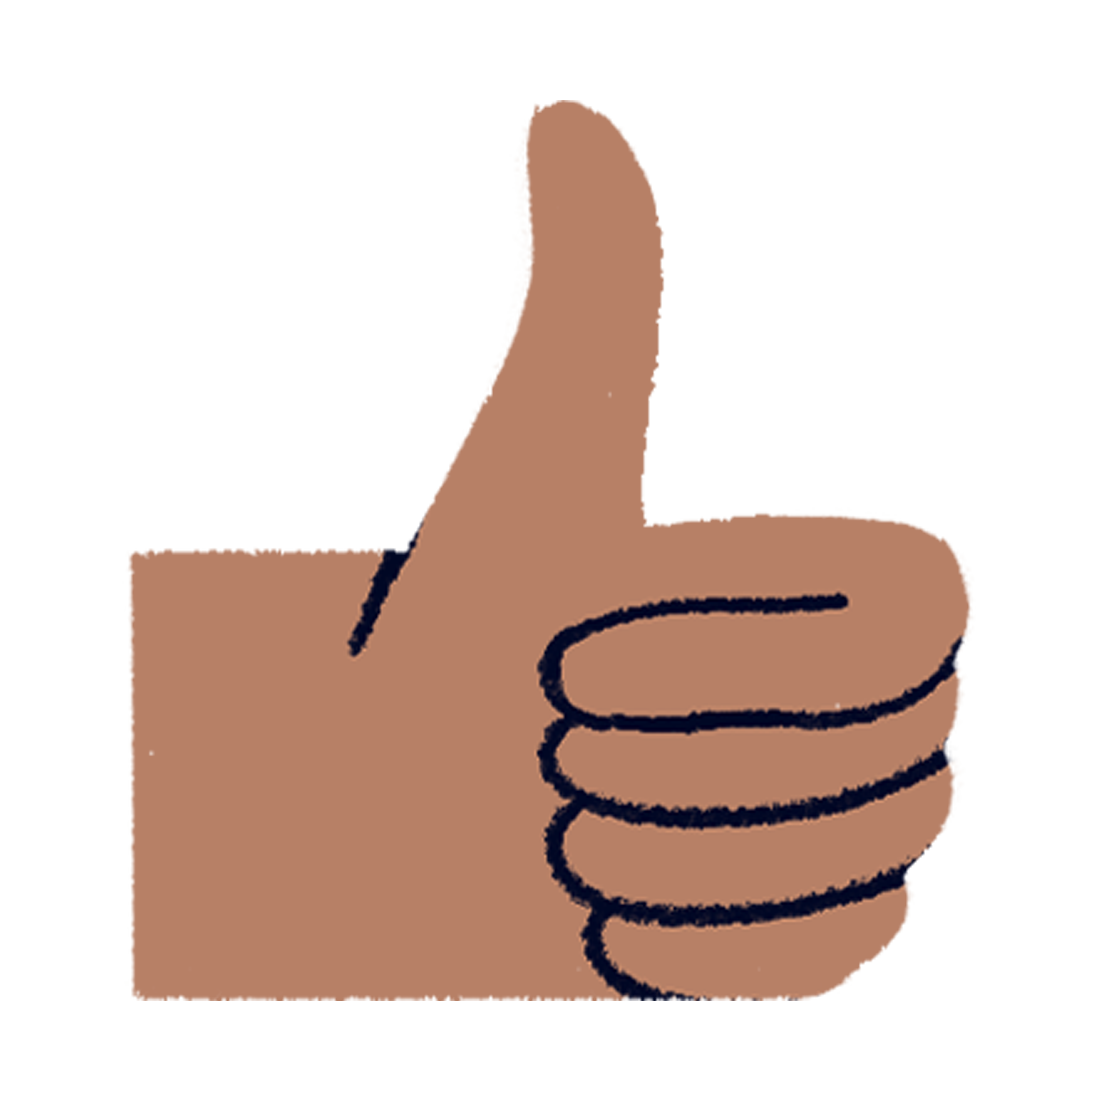 A thumbs up sign representing customer feedback on MyMuse products as part of the Beta Tester program at MyMuse Labs